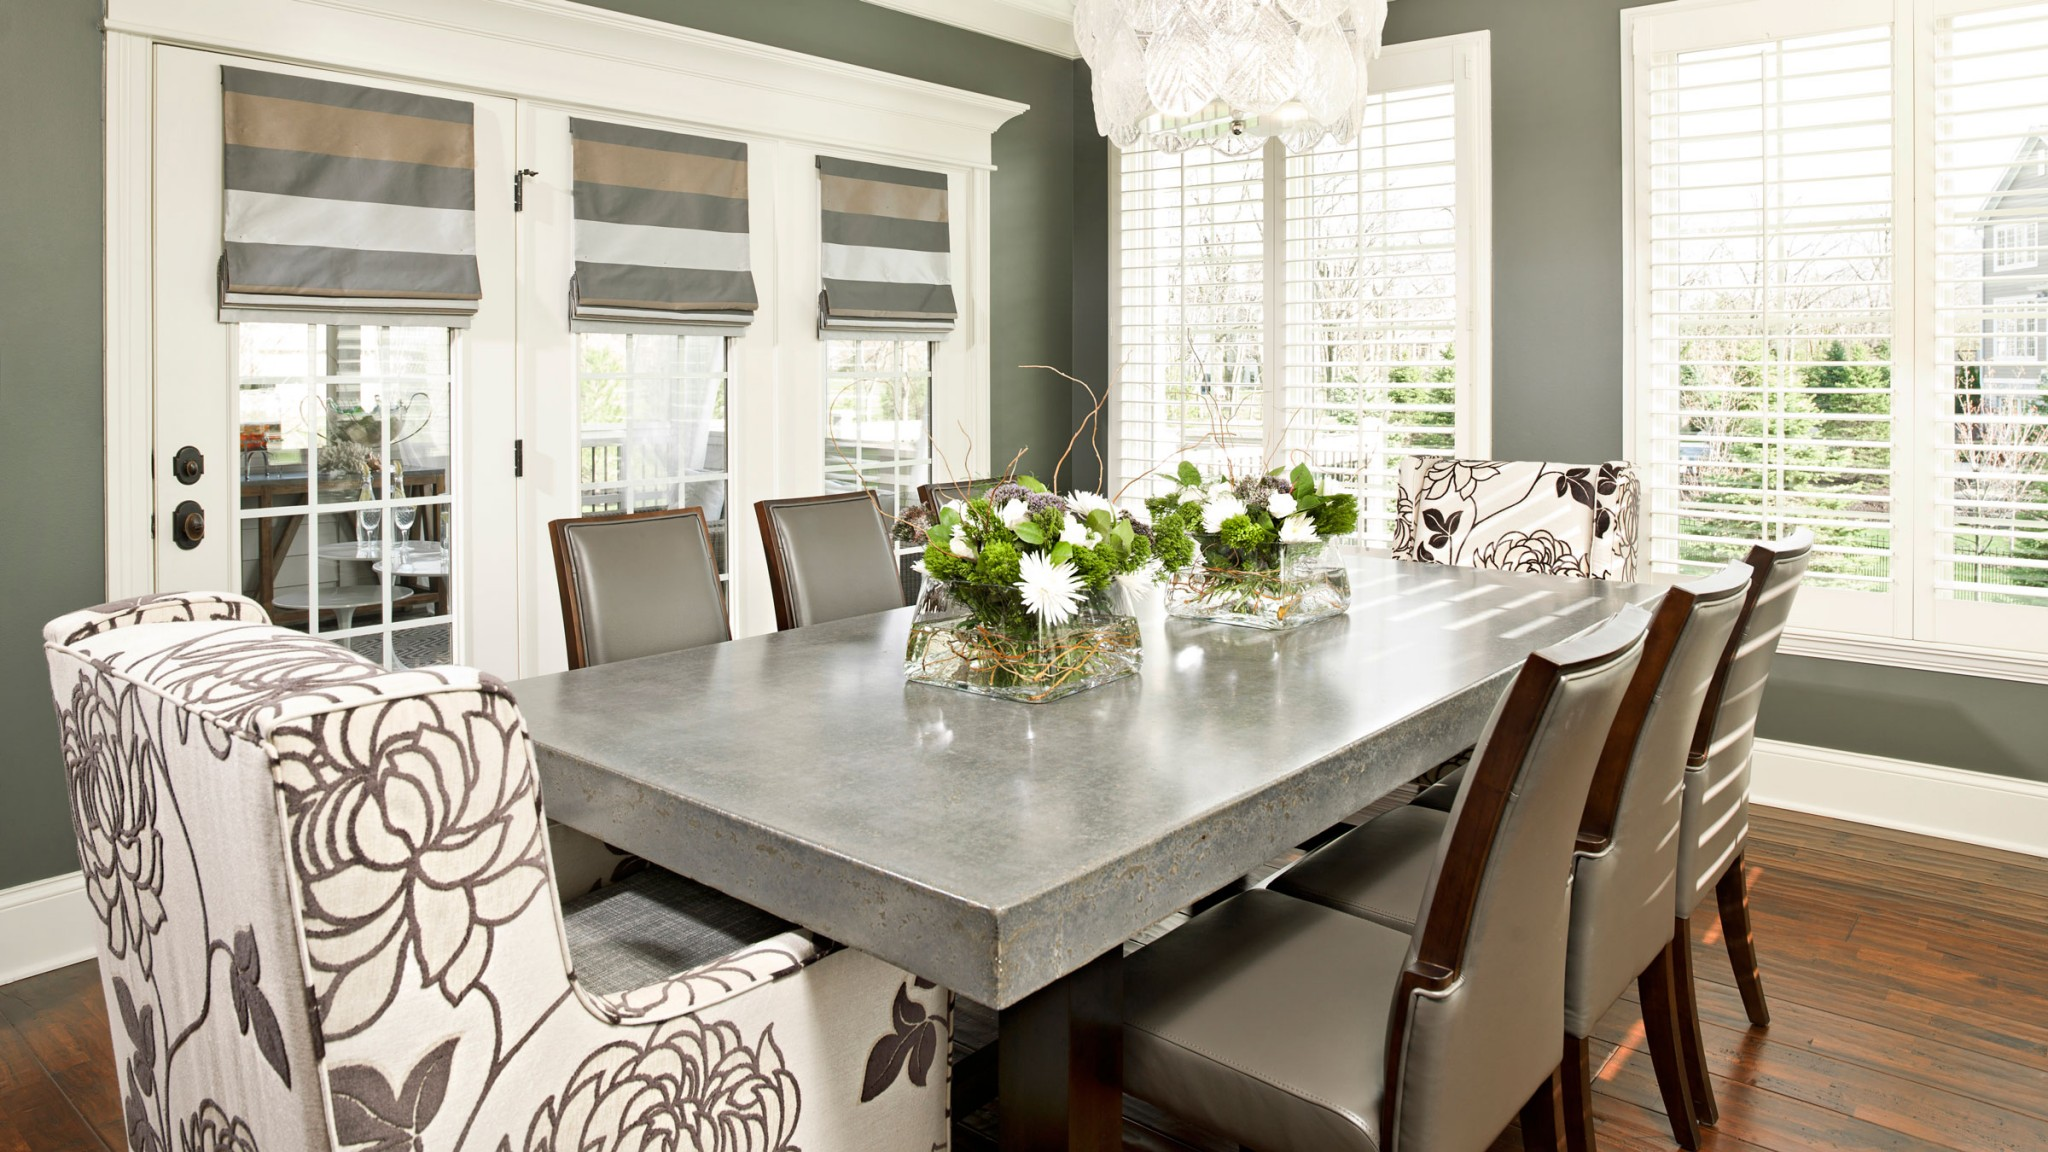 Dining Room | Courtney Casteel Interior Design